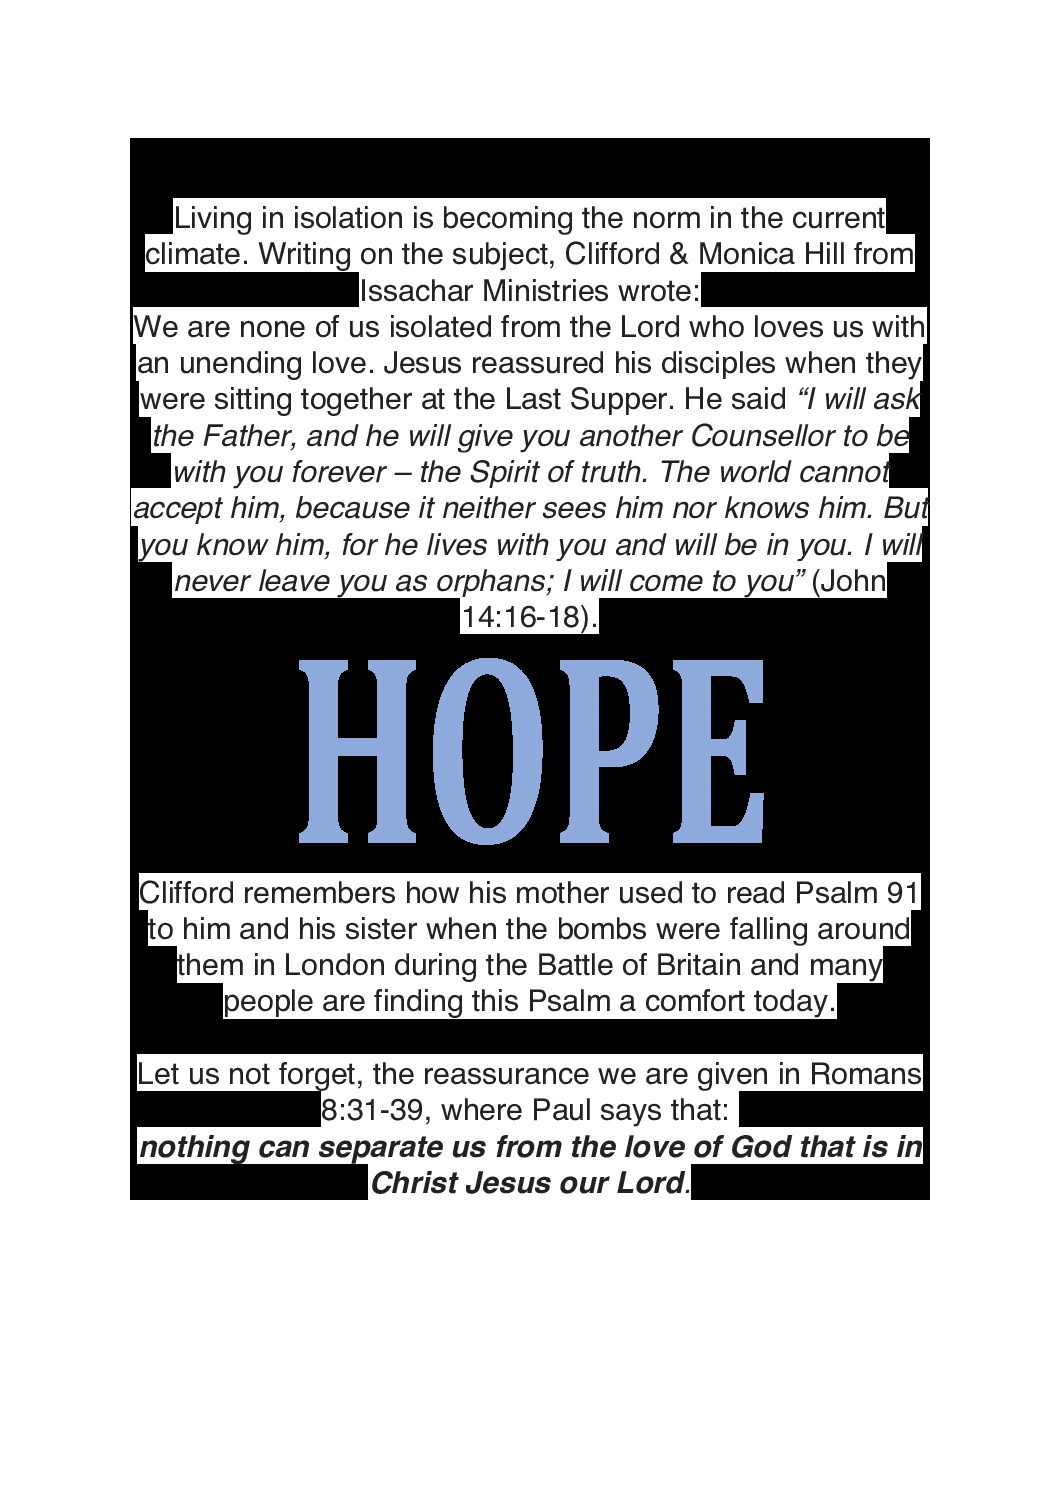 Hope in the midst of Isolation